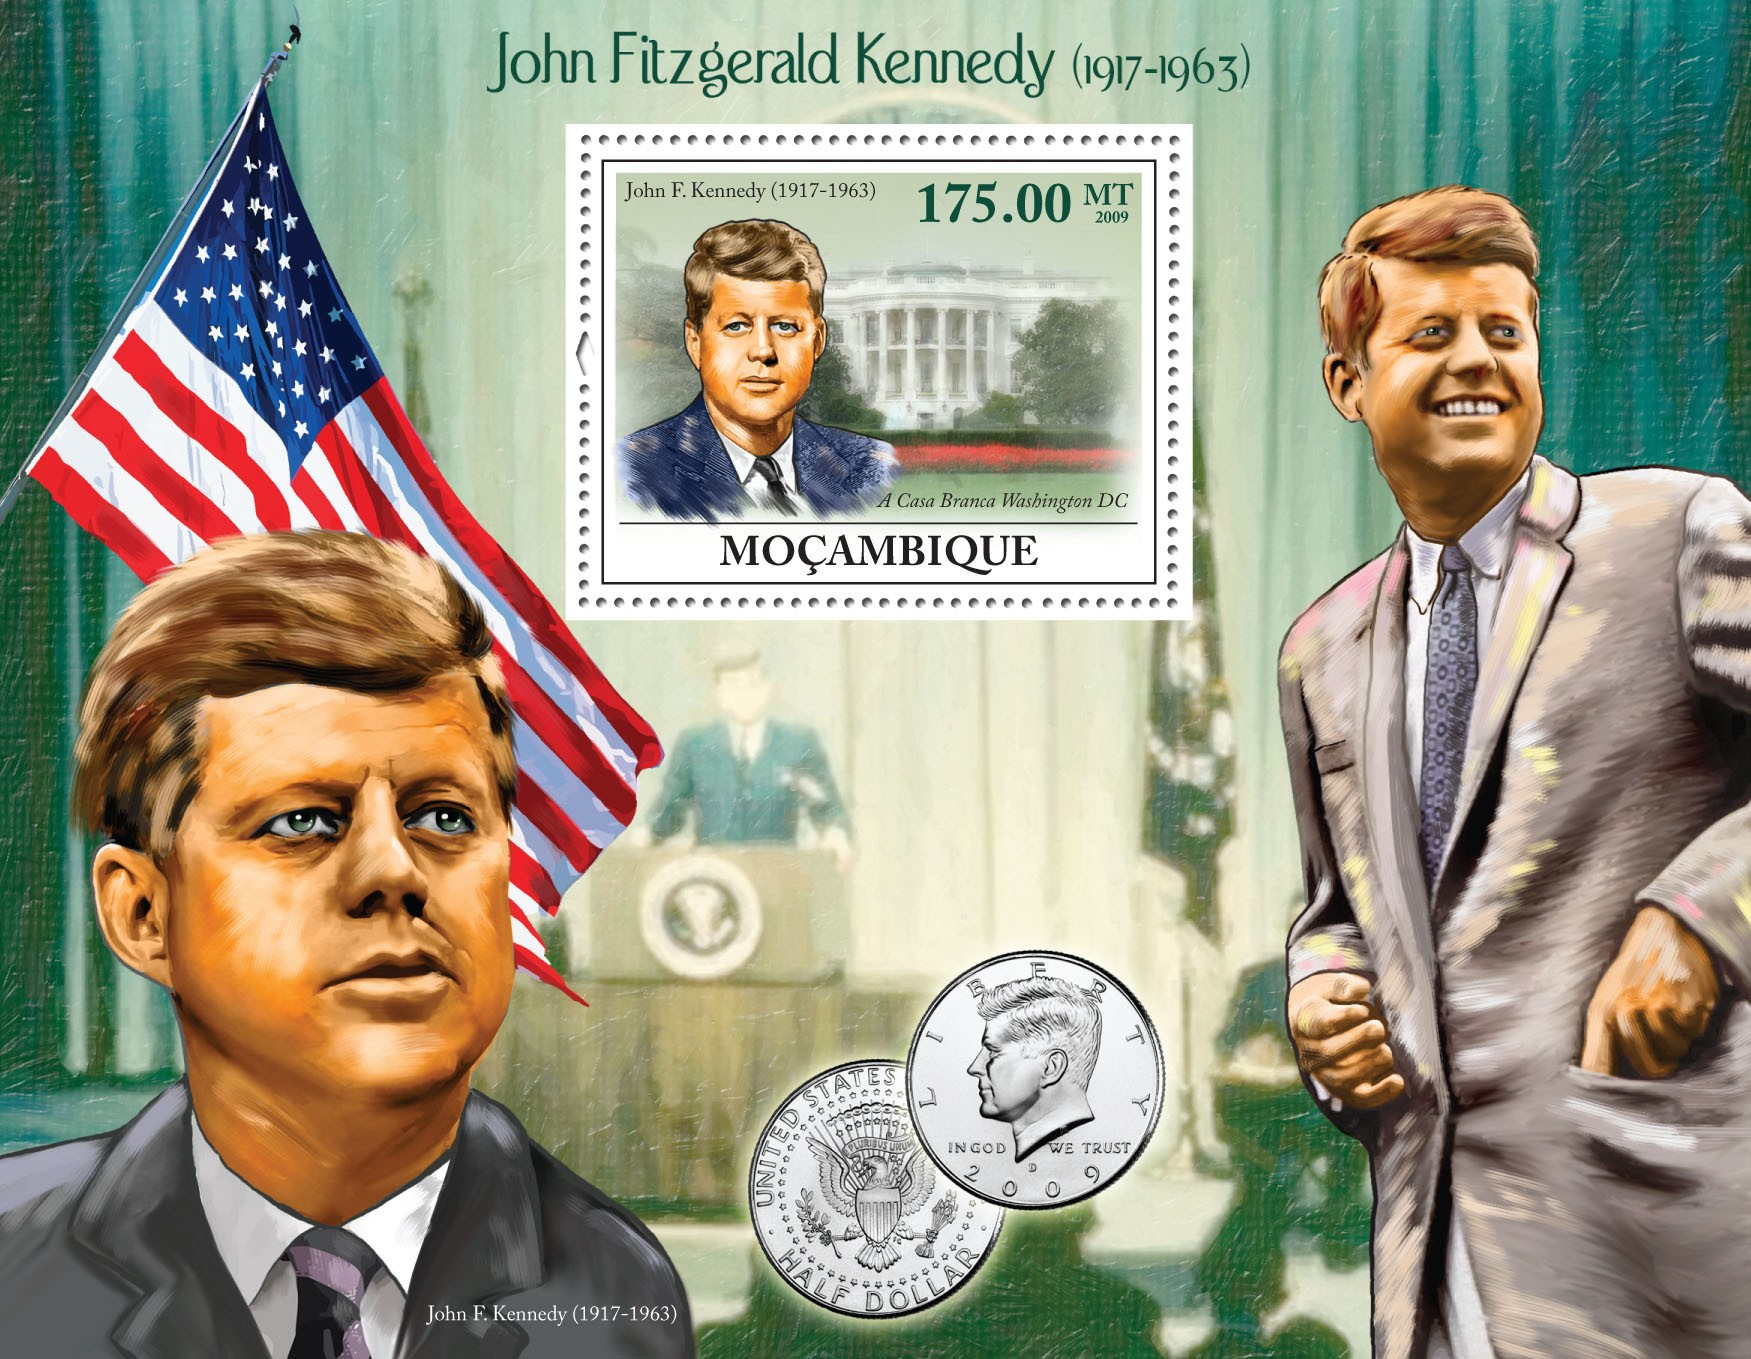 John Fitzgerald Kennedy (1917-1963) - Issue of Mozambique postage Stamps